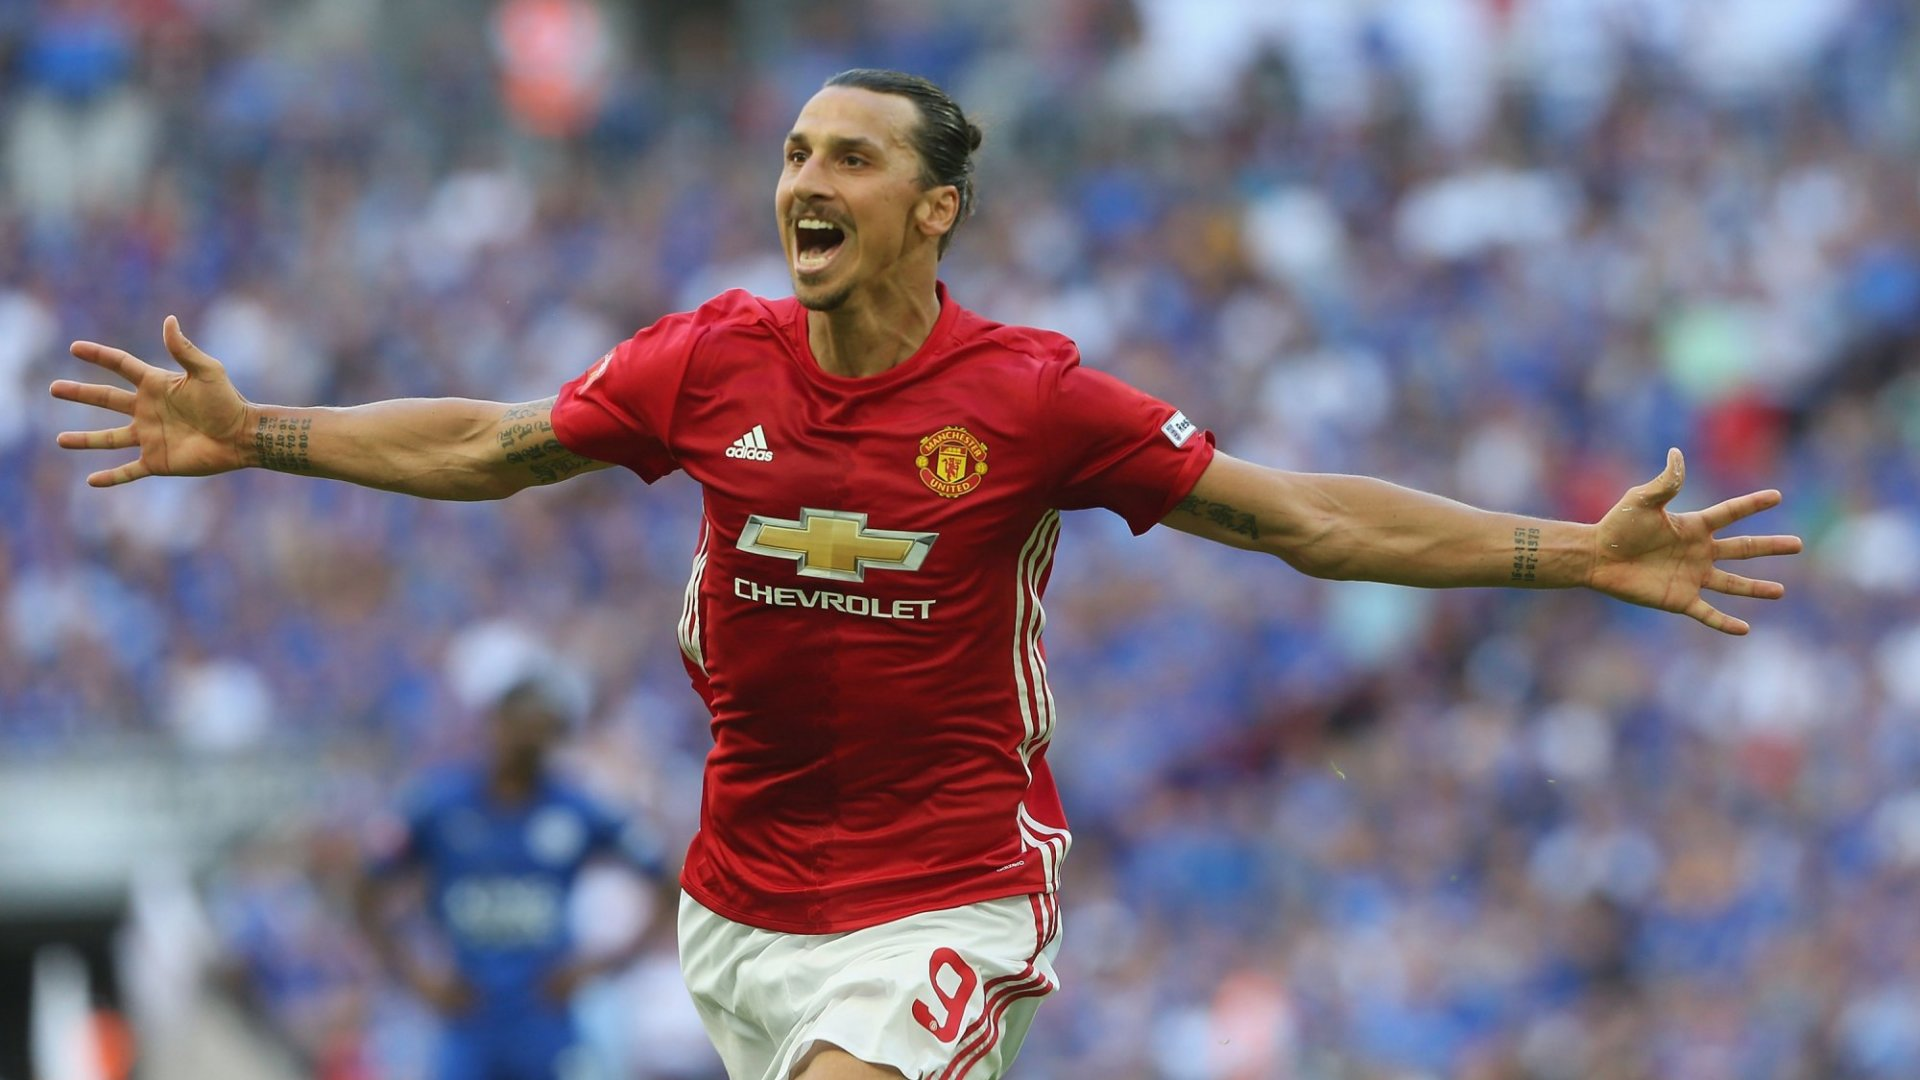 Visa Hopes to Score with a Fully 'Zlatanized' 2018 World Cup Campaign